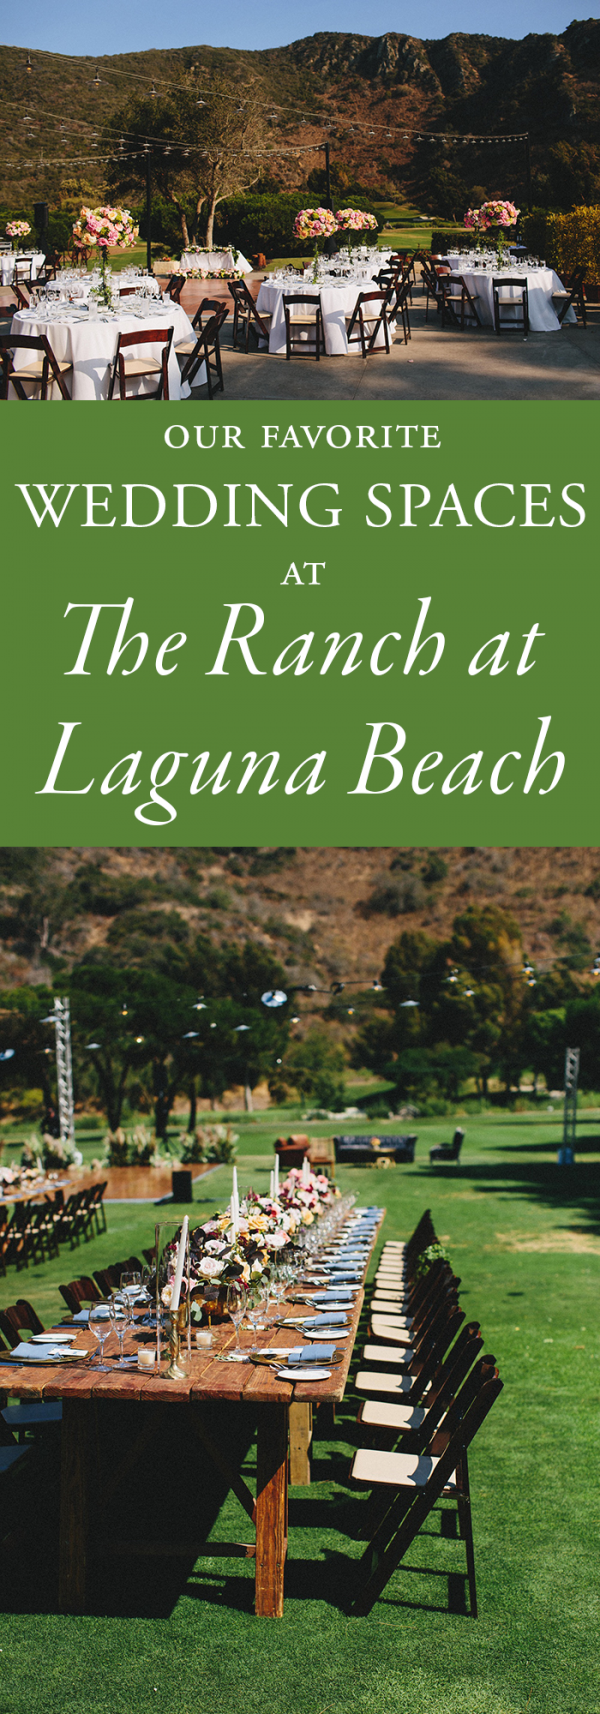 Our Favorite Wedding Spaces at The Ranch at Laguna Beach